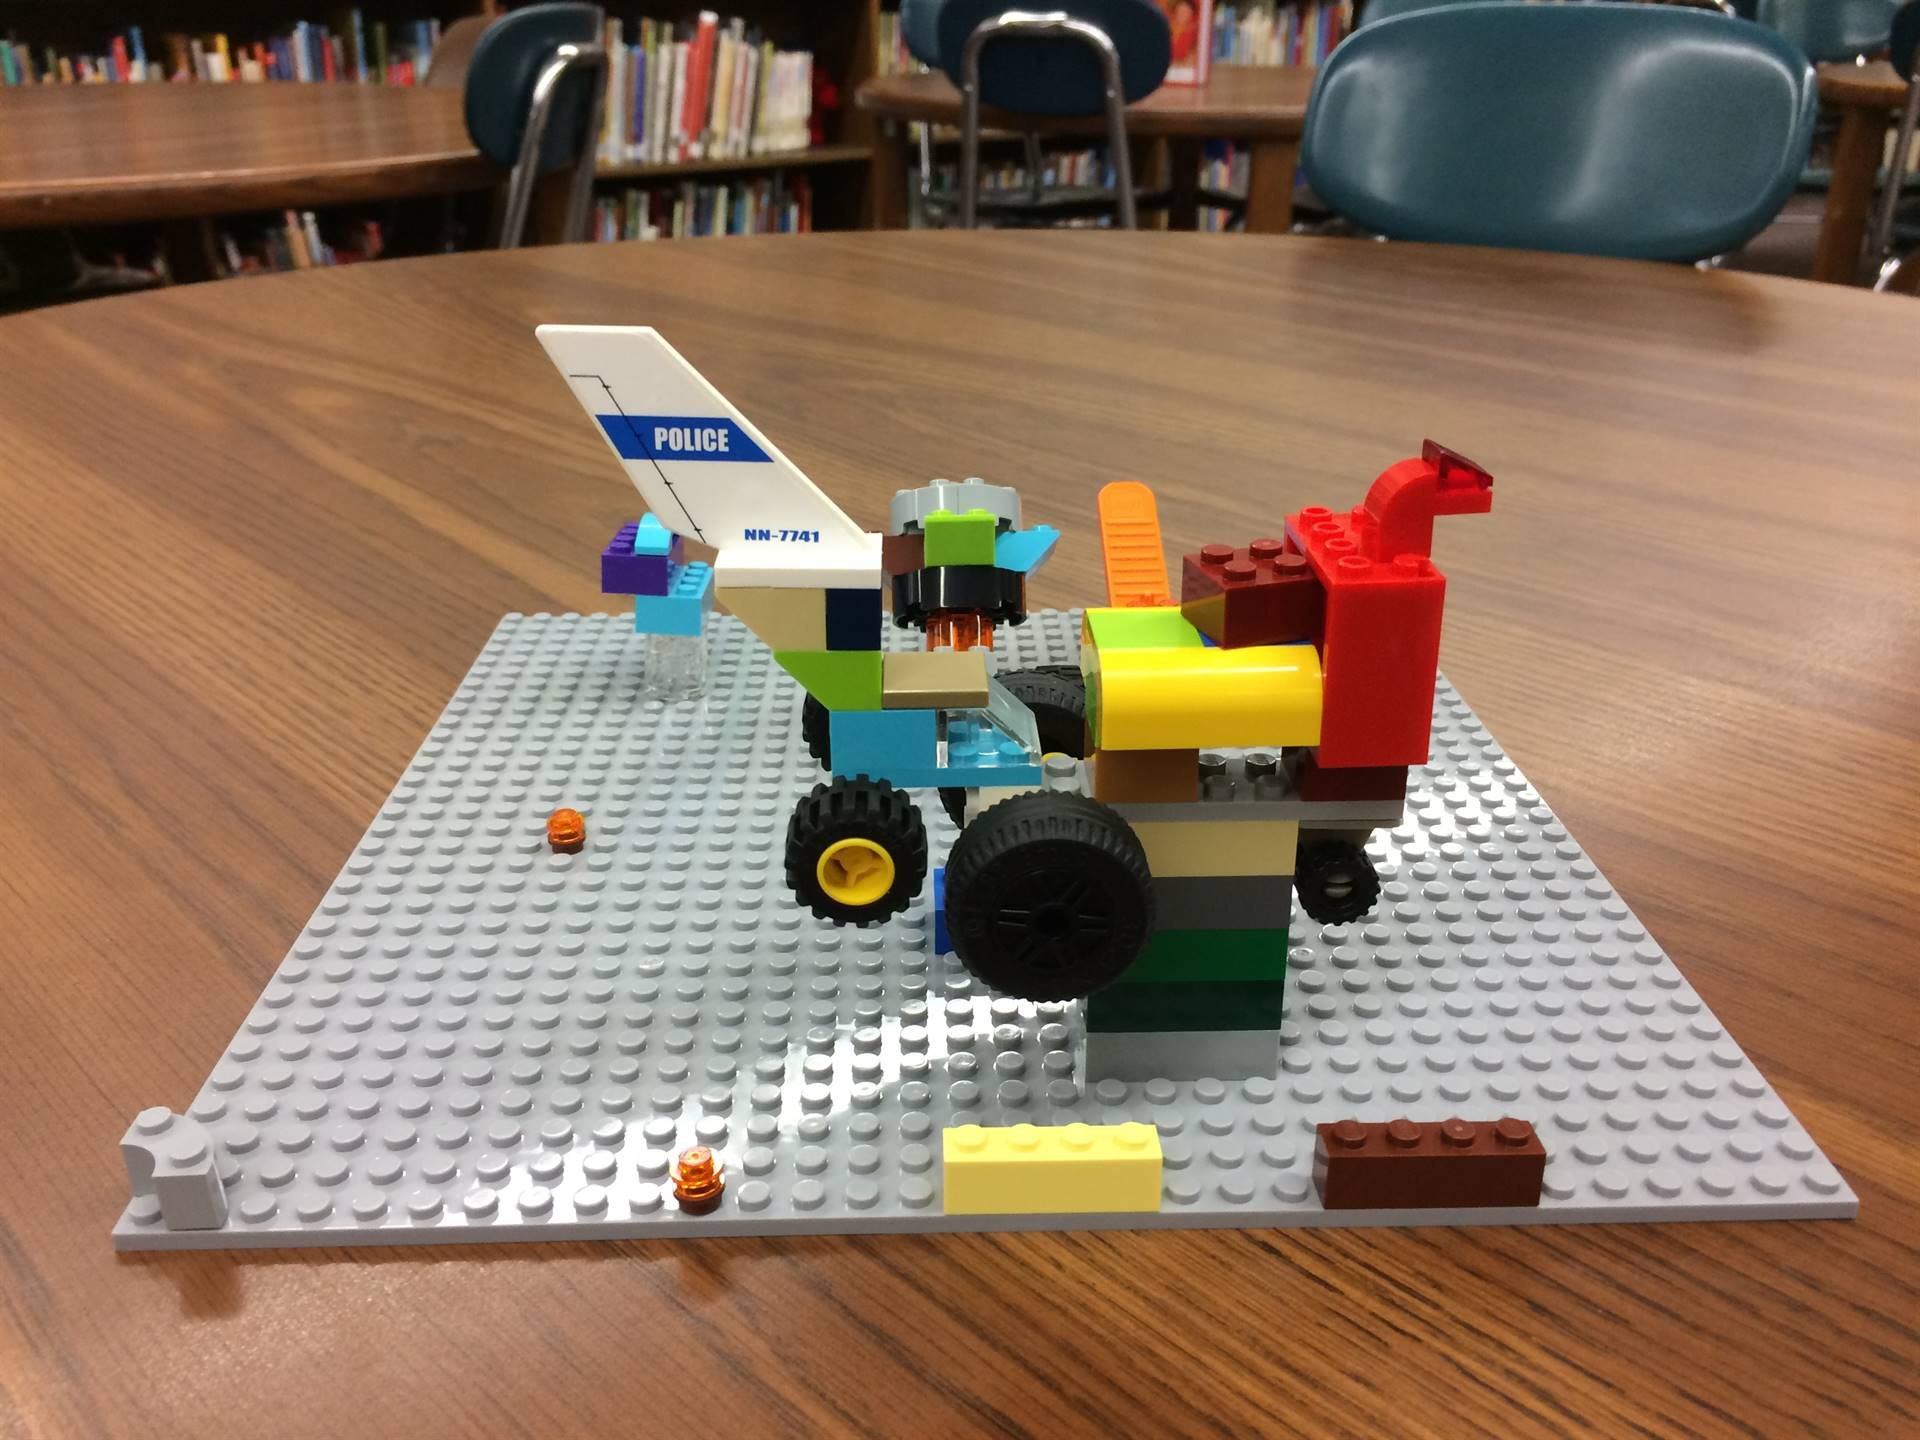 Learning Fun in the Library